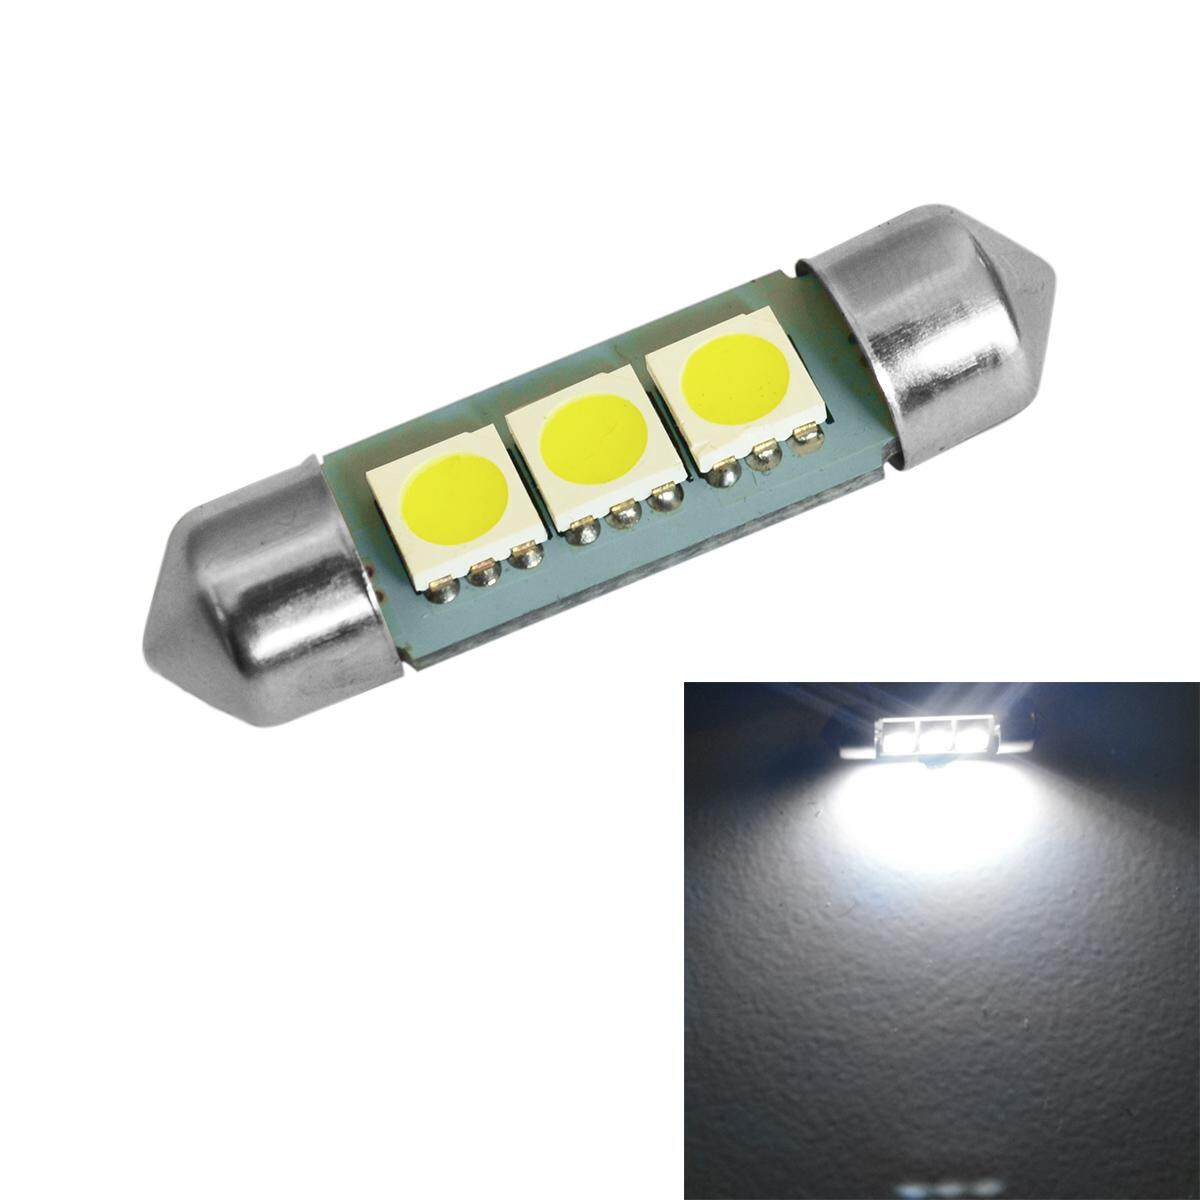 Buy Sell Cheapest Jiawen 3w Led Best Quality Product Deals Life Lampu Strip Smd5050 Soft Light Memperhiasi 36 Mm 1 W 60lm 3 Smd 6500 K Bola Putih